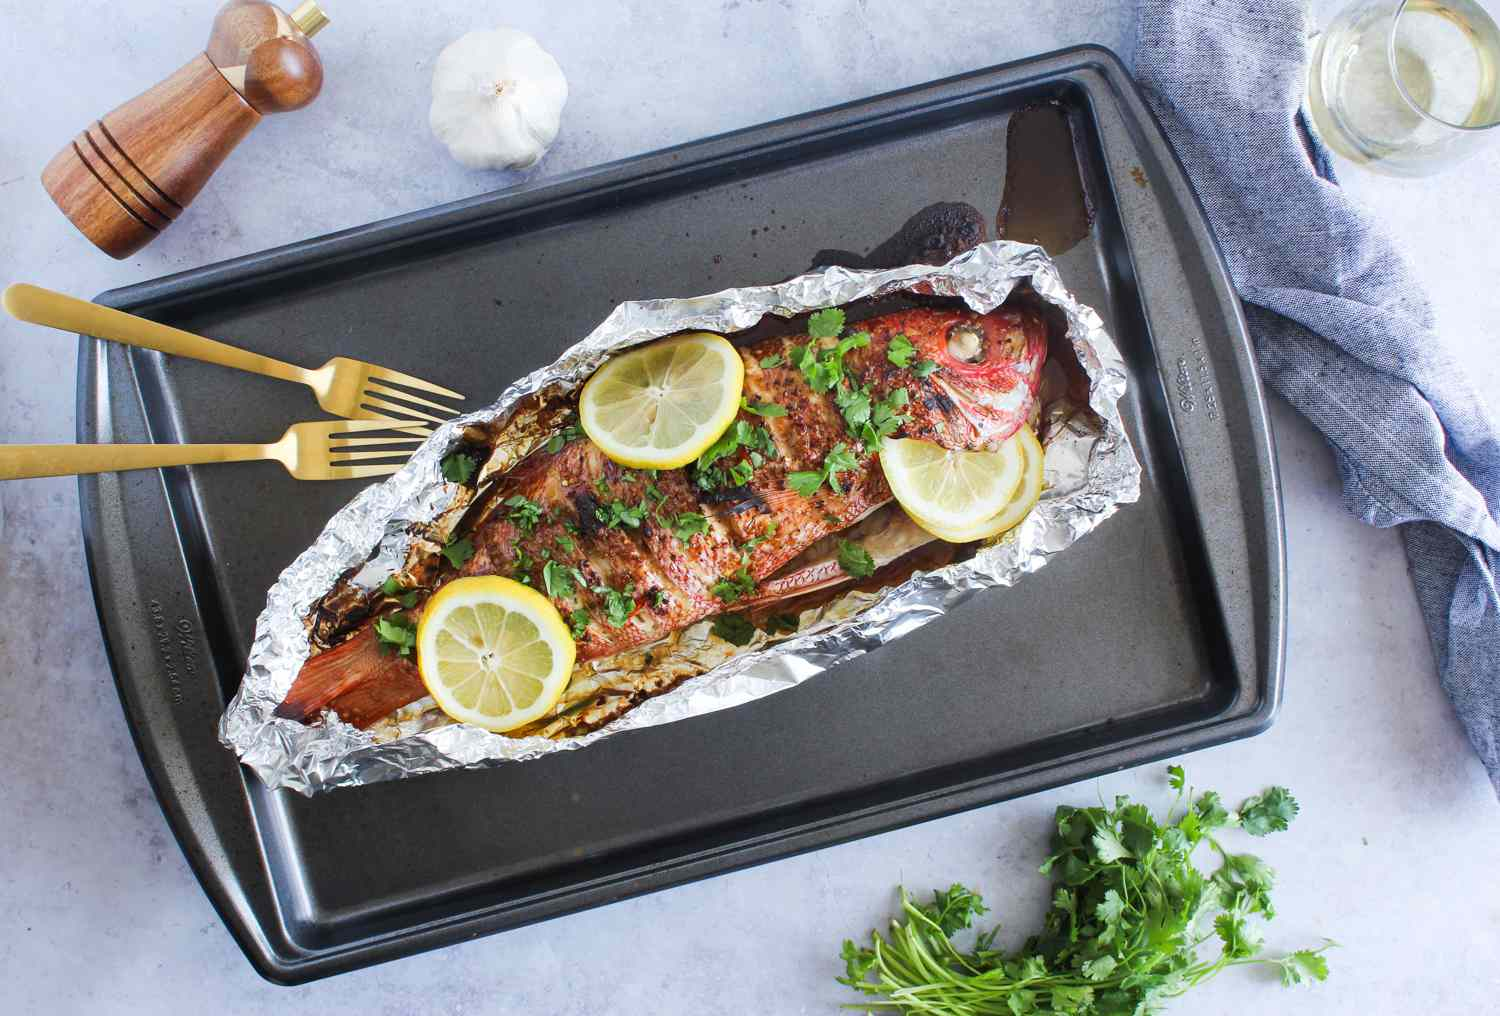 Cooked whole fish with lemon slices and coriander